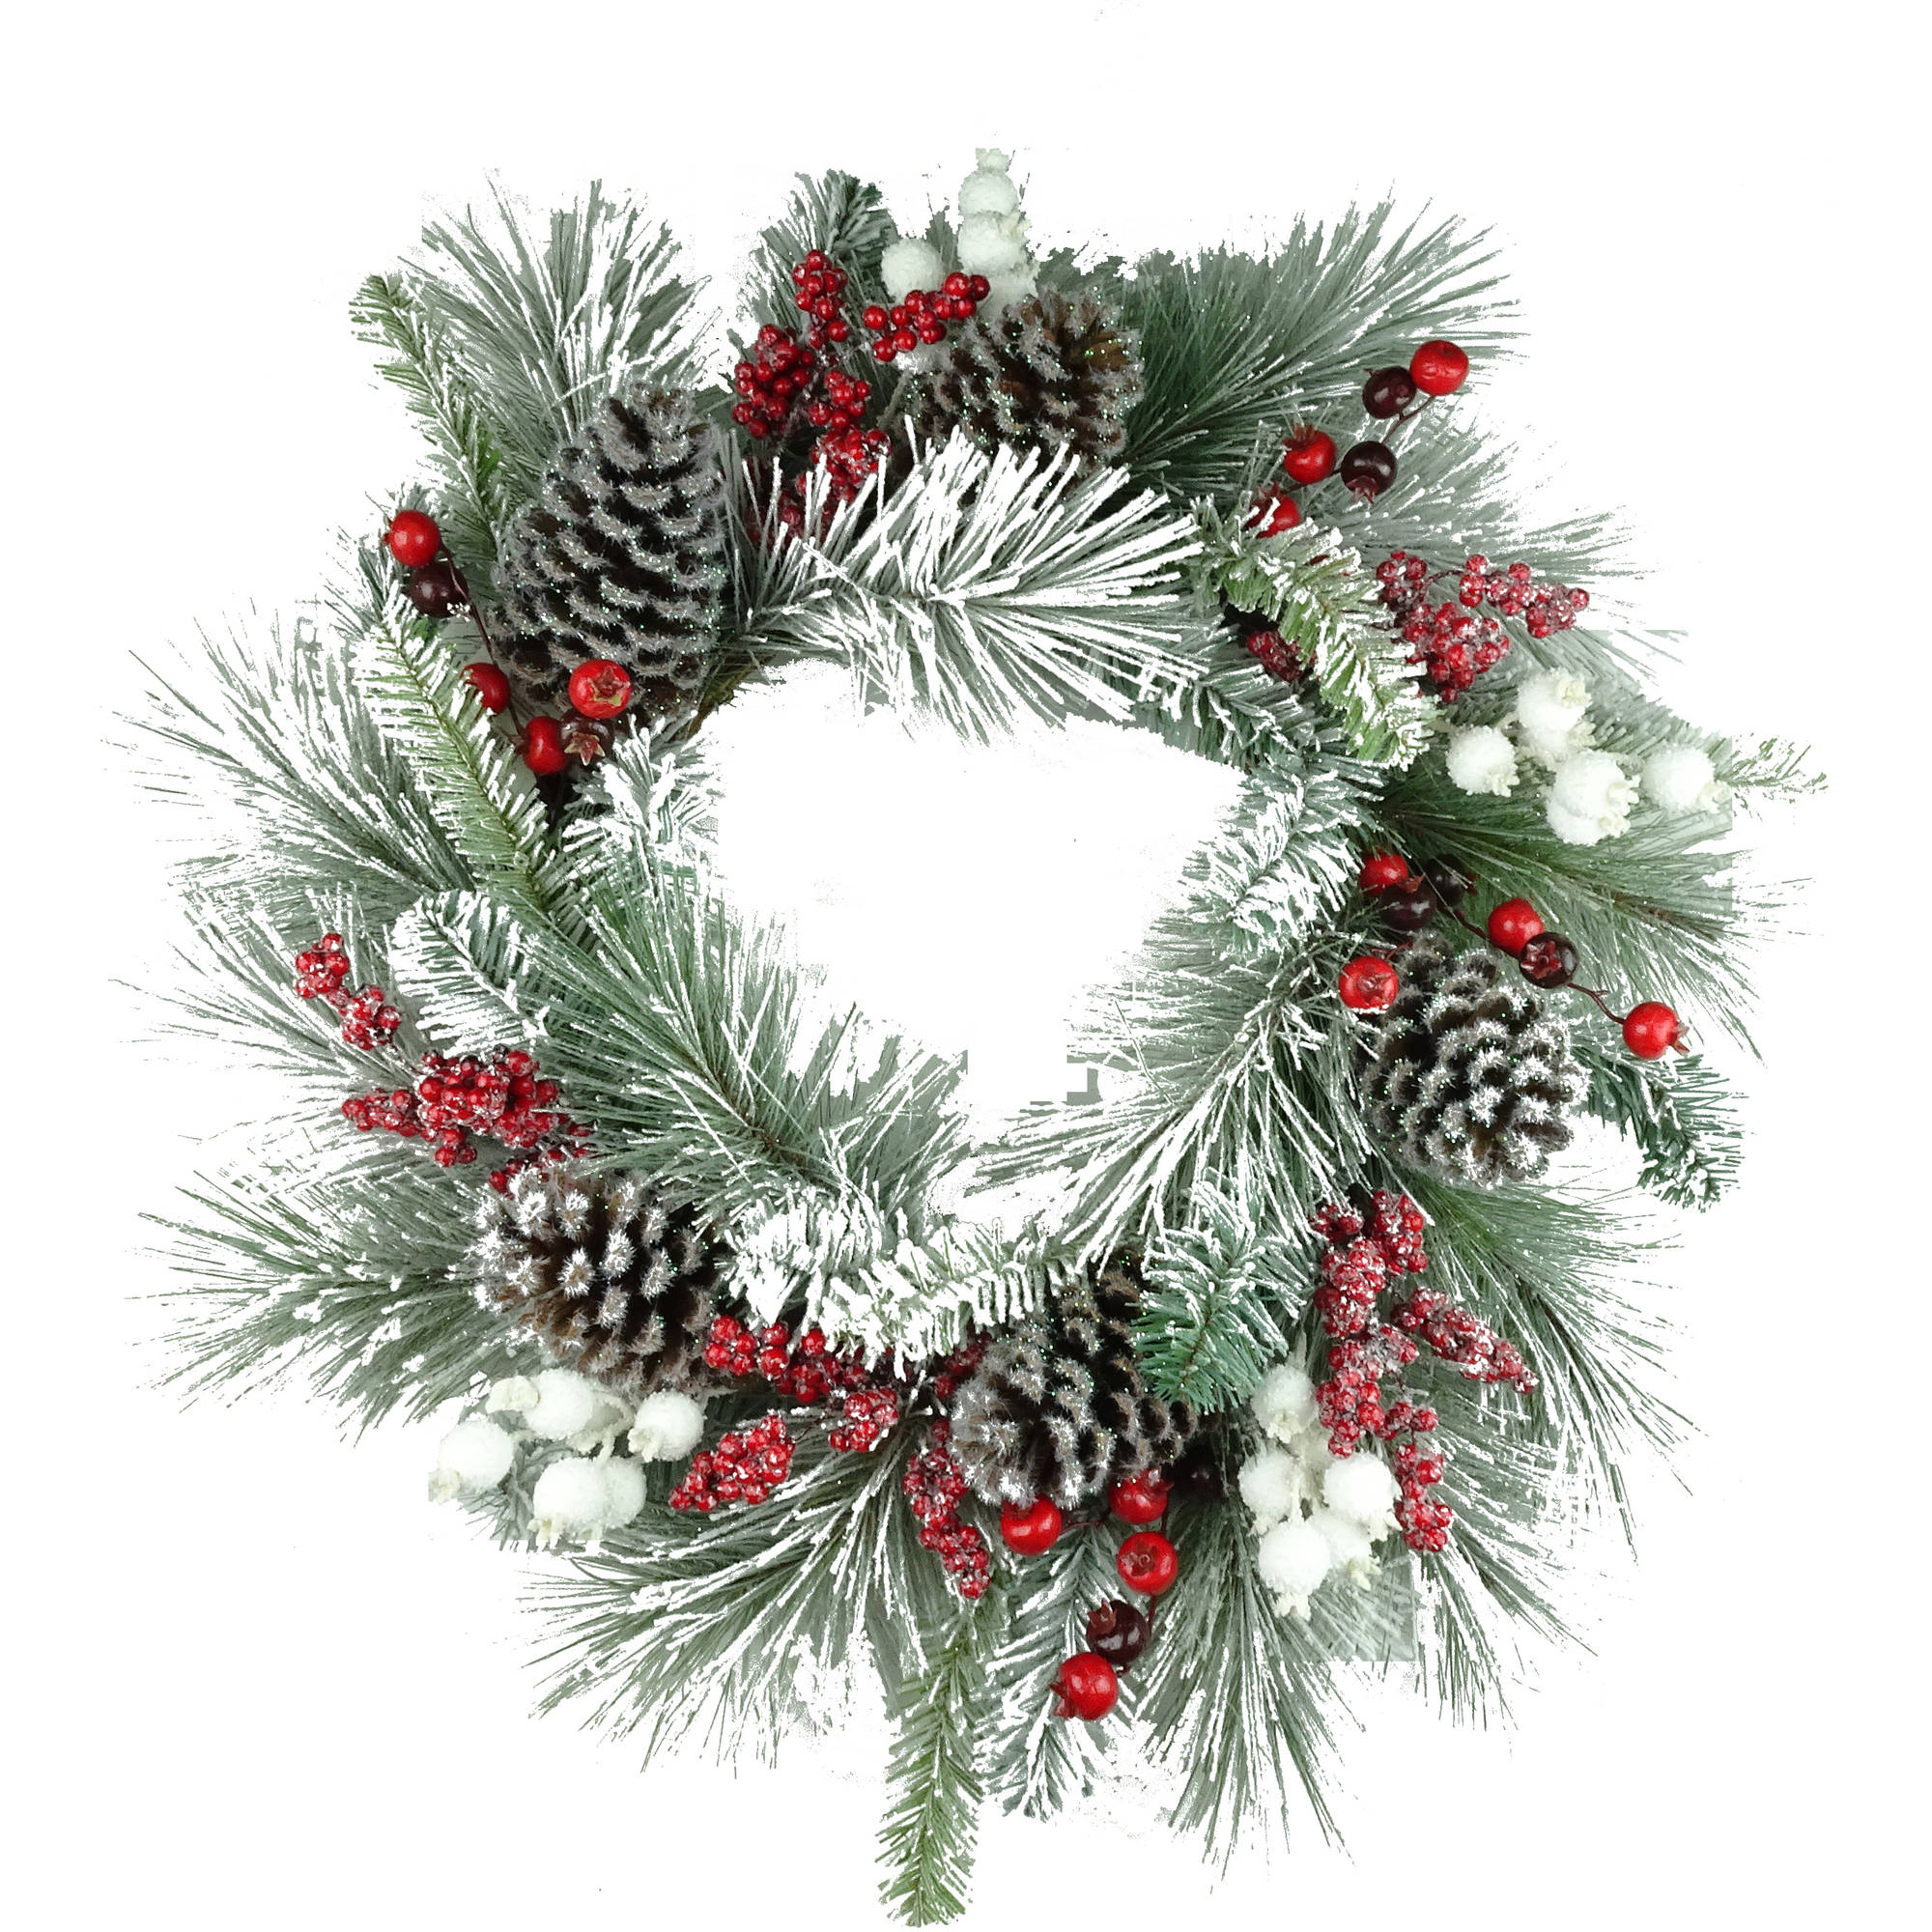 Holiday Time Christmas Decor 30 Deluxe White Flocked Holly Berry Wreath